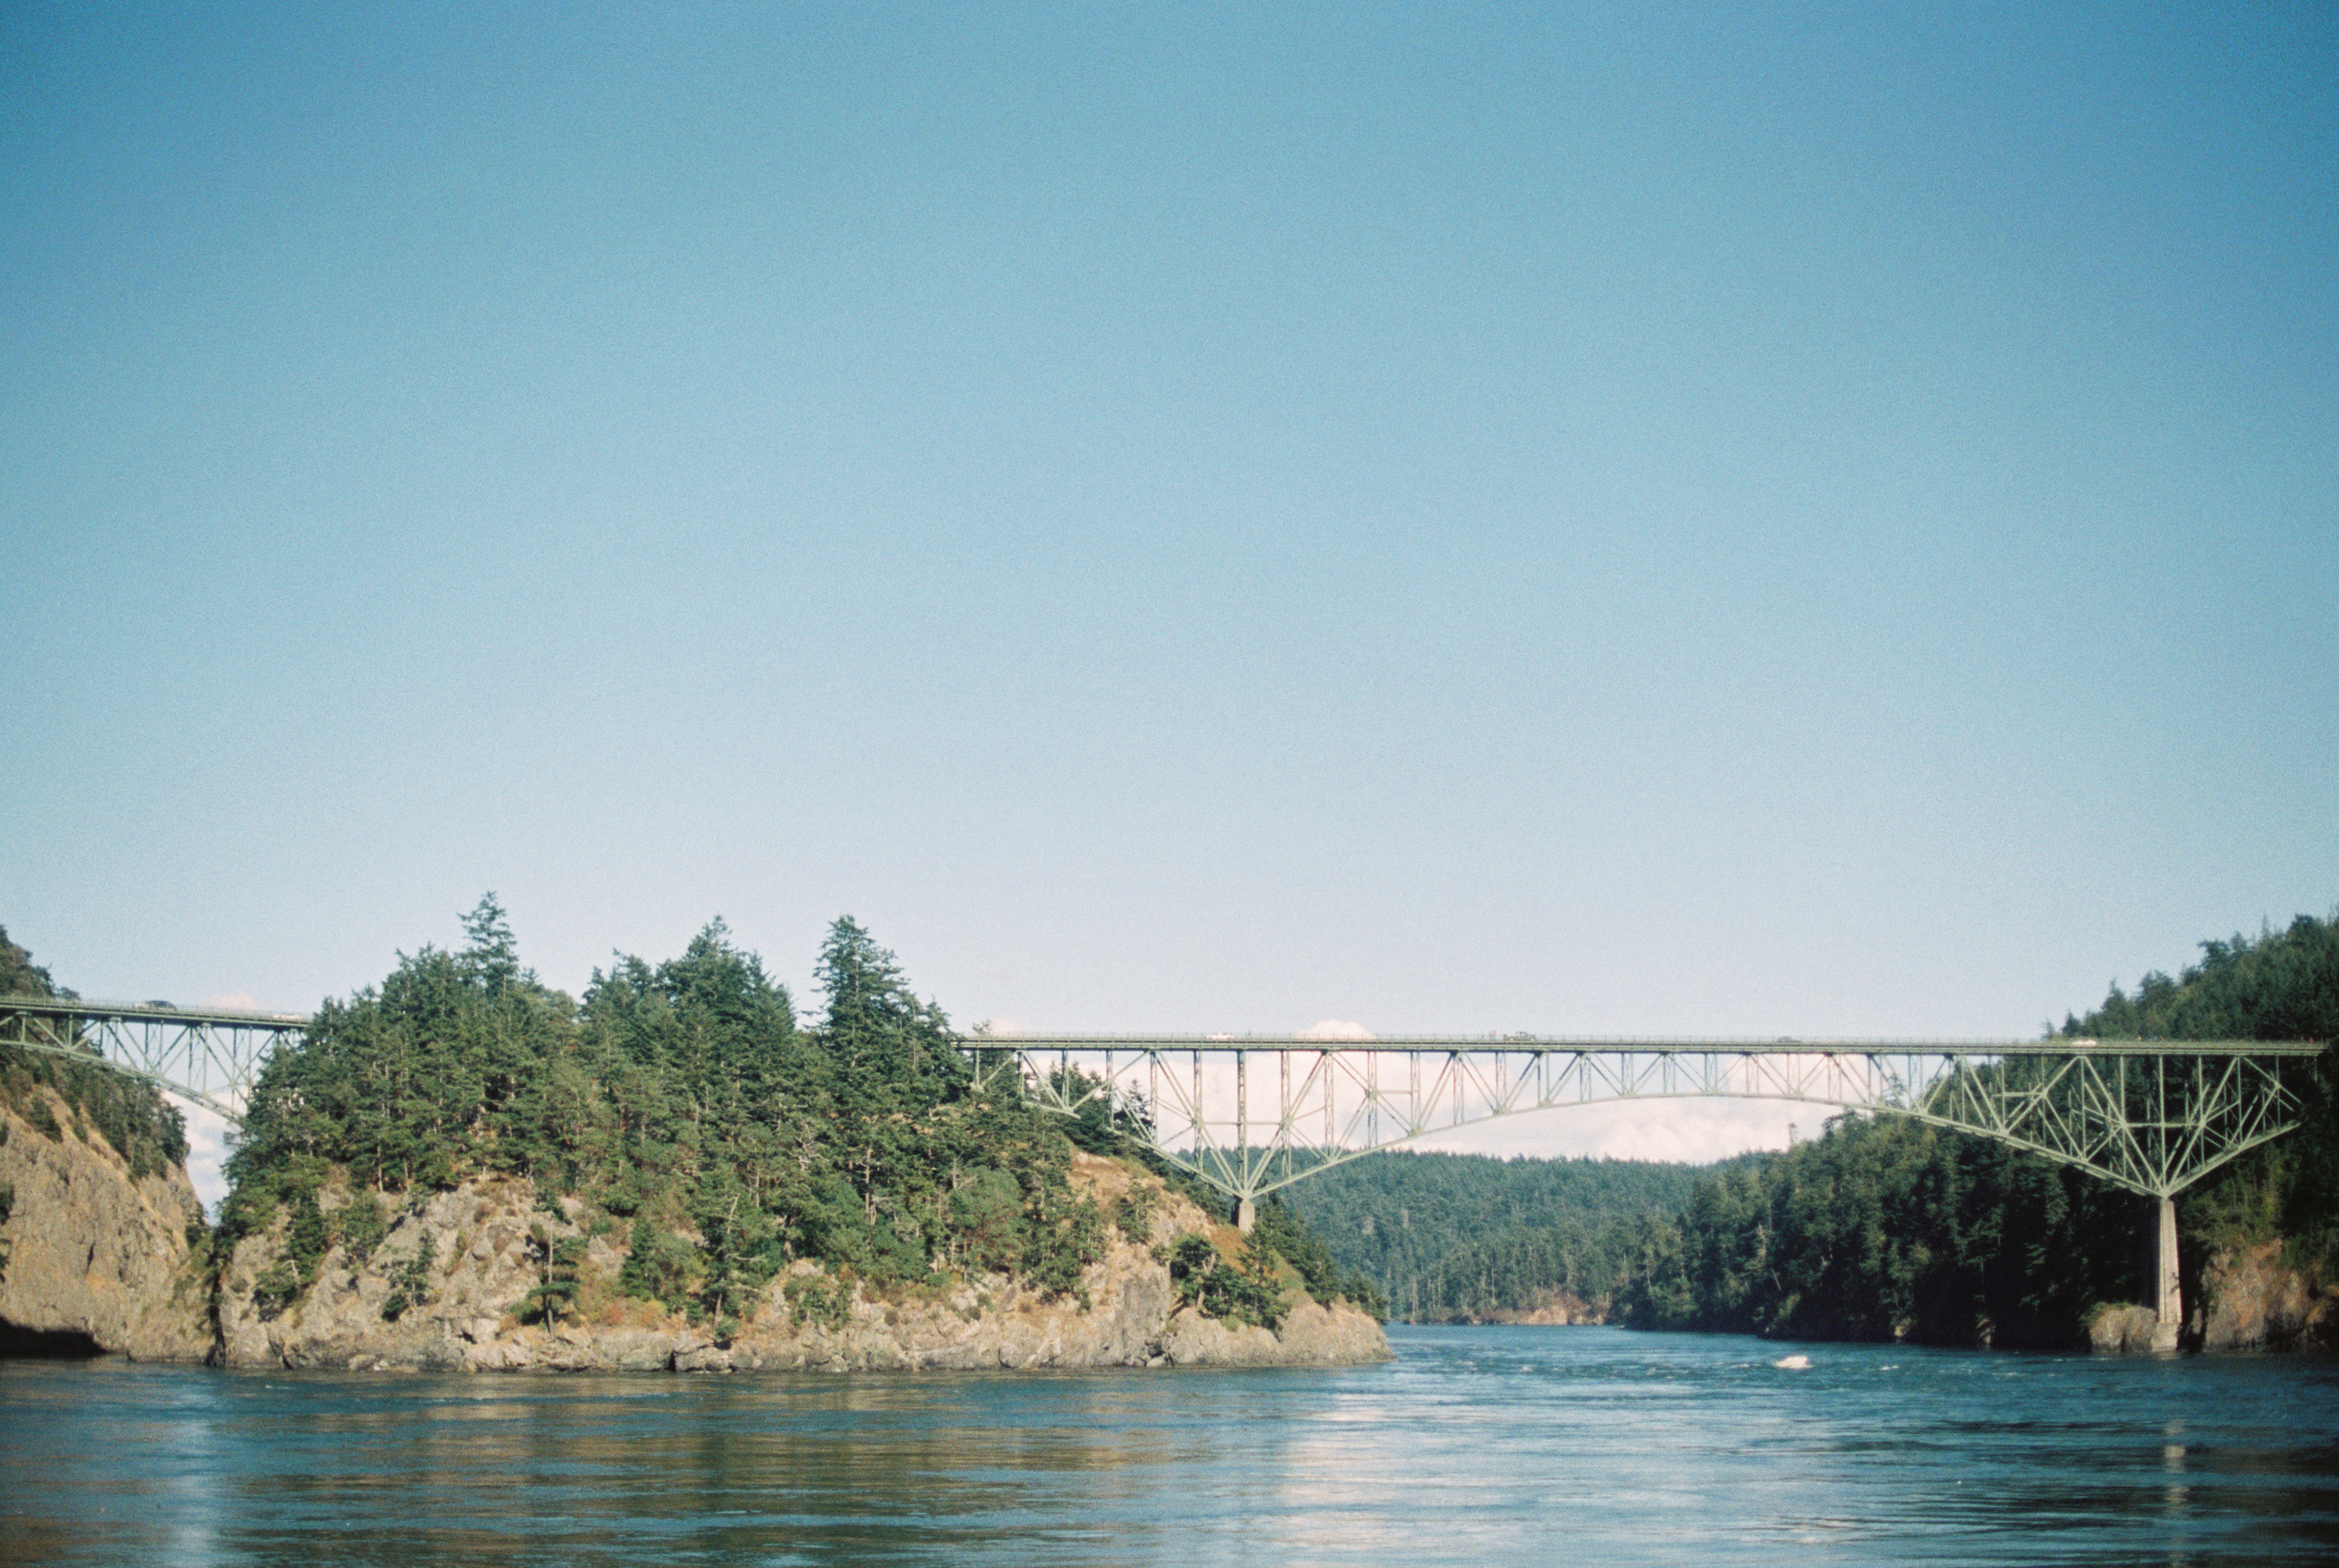 Whidbey Island - Deception Pass - Washington Elopement Photographer - Washington Travel - Amanda Lenhardt Photography